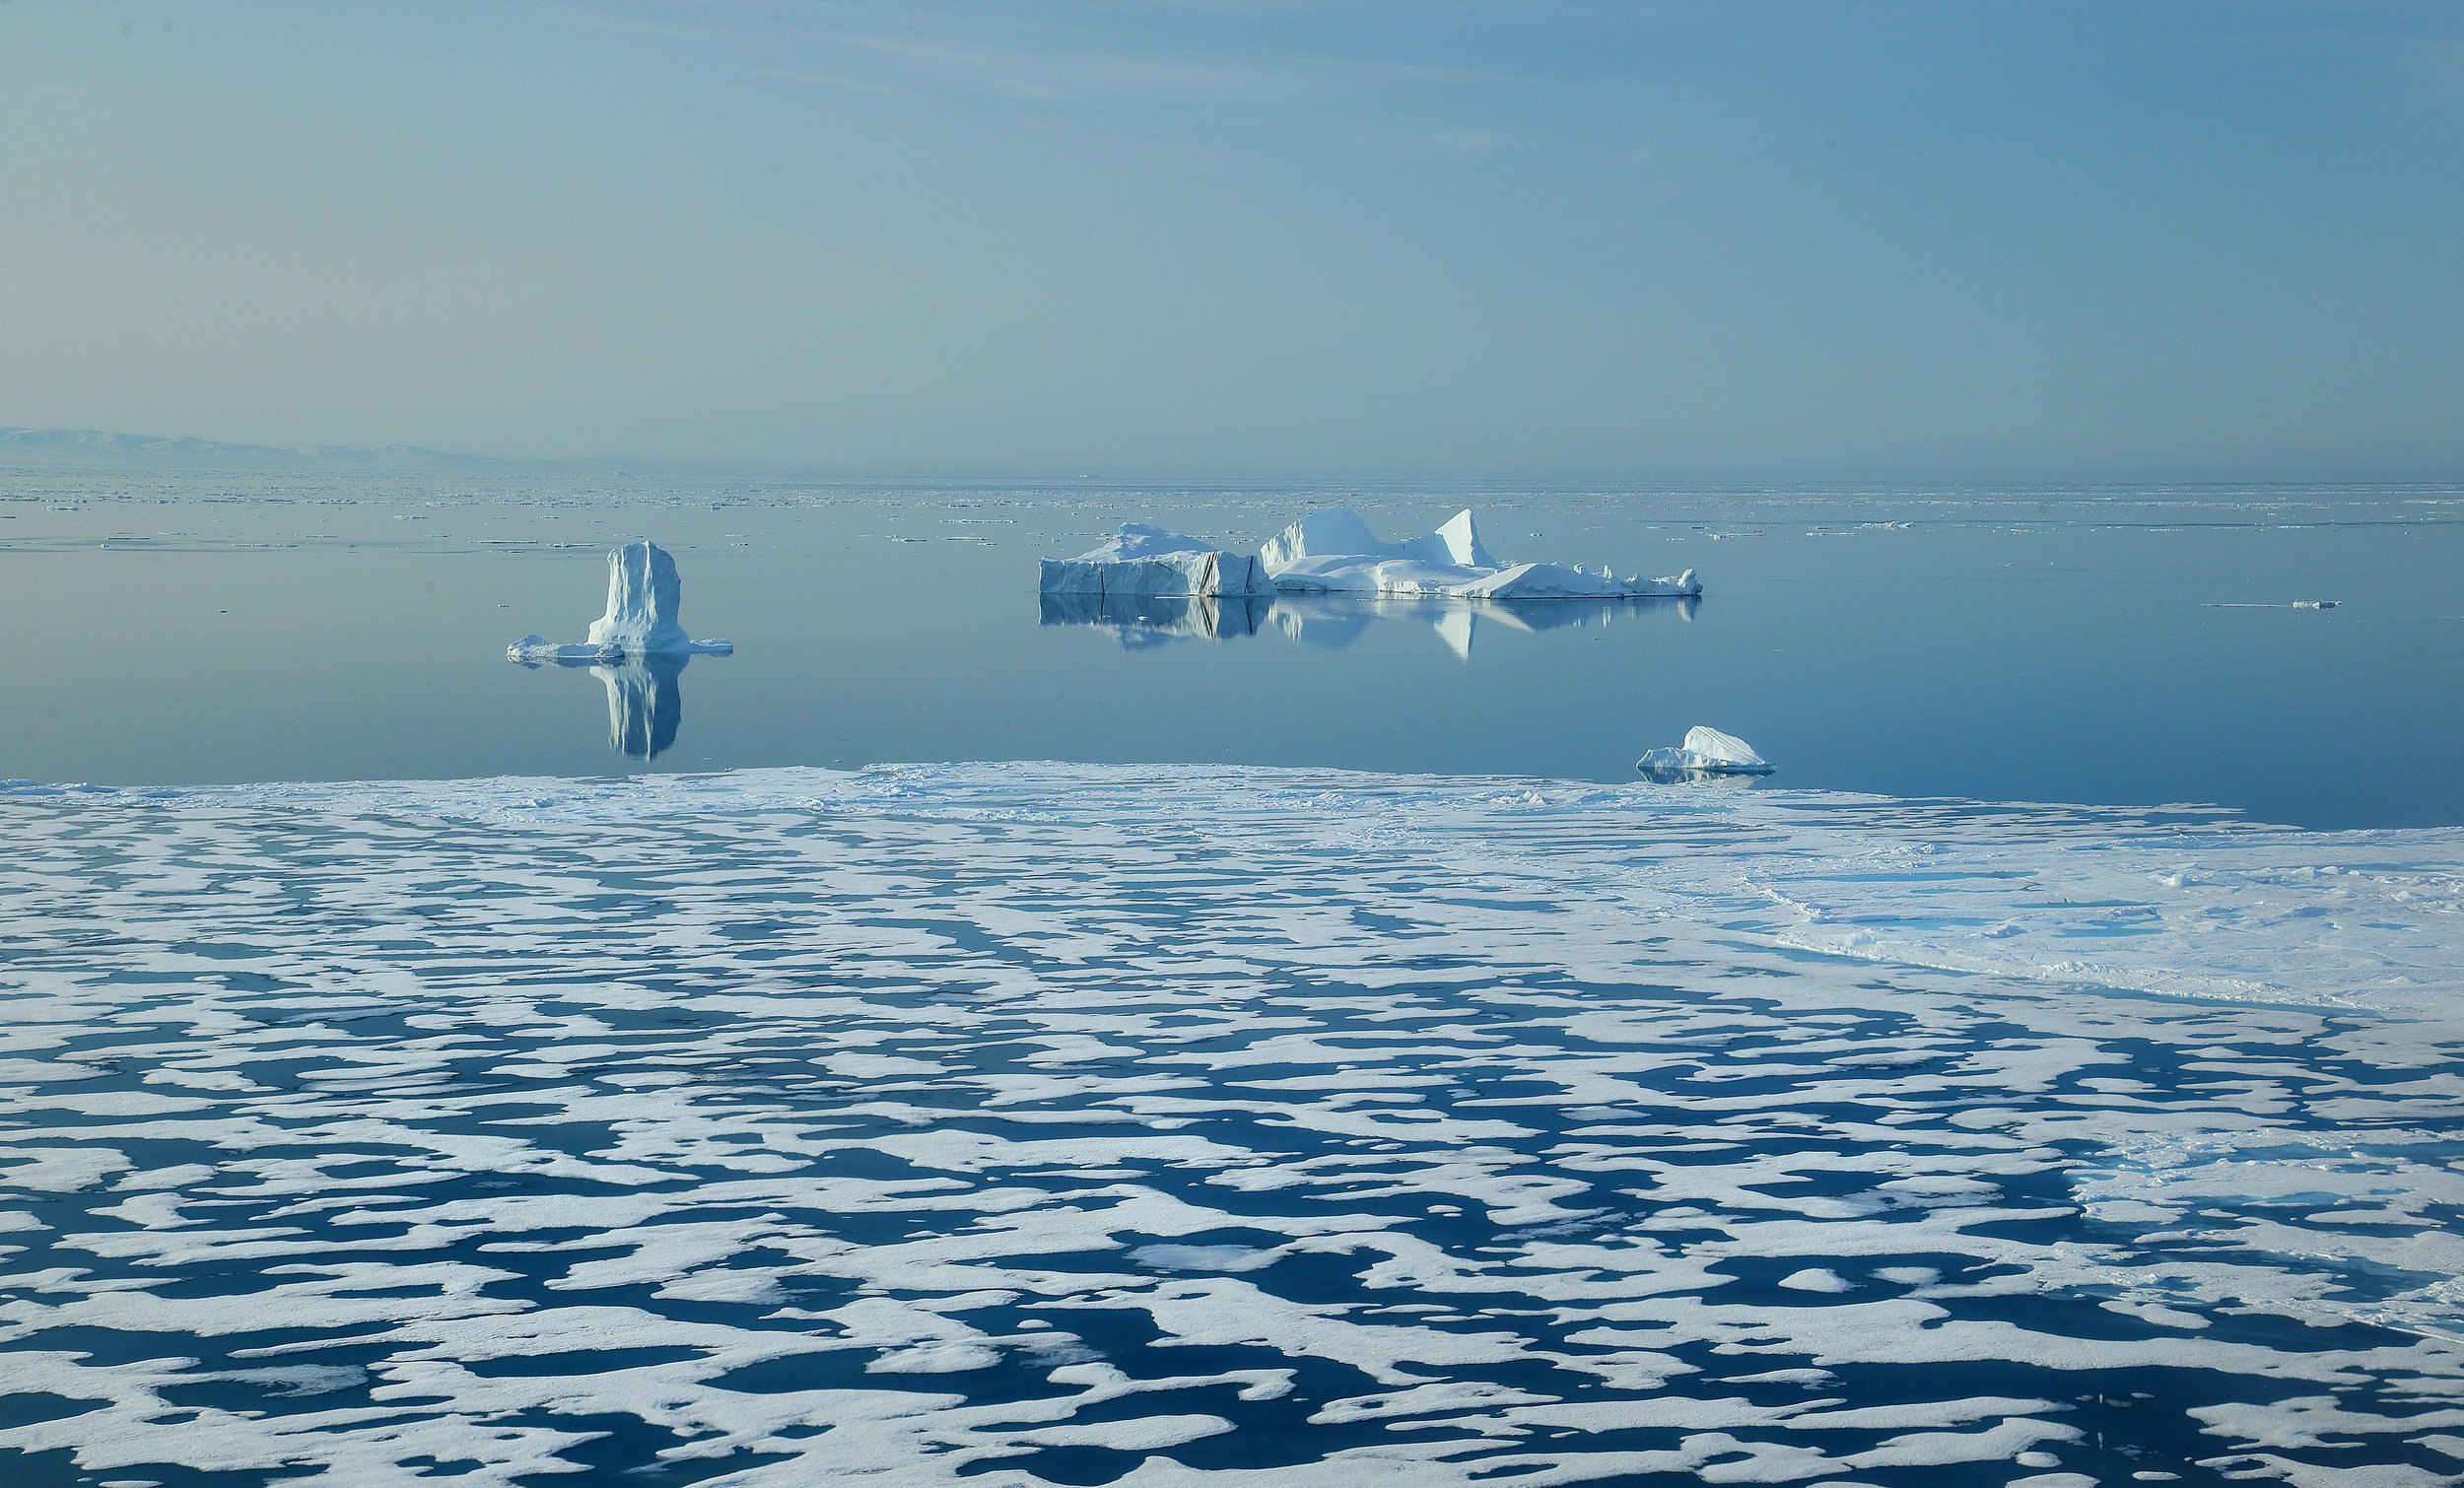 Ice floes near Baffin Island, Canada. Photograph by Manu San Félix.